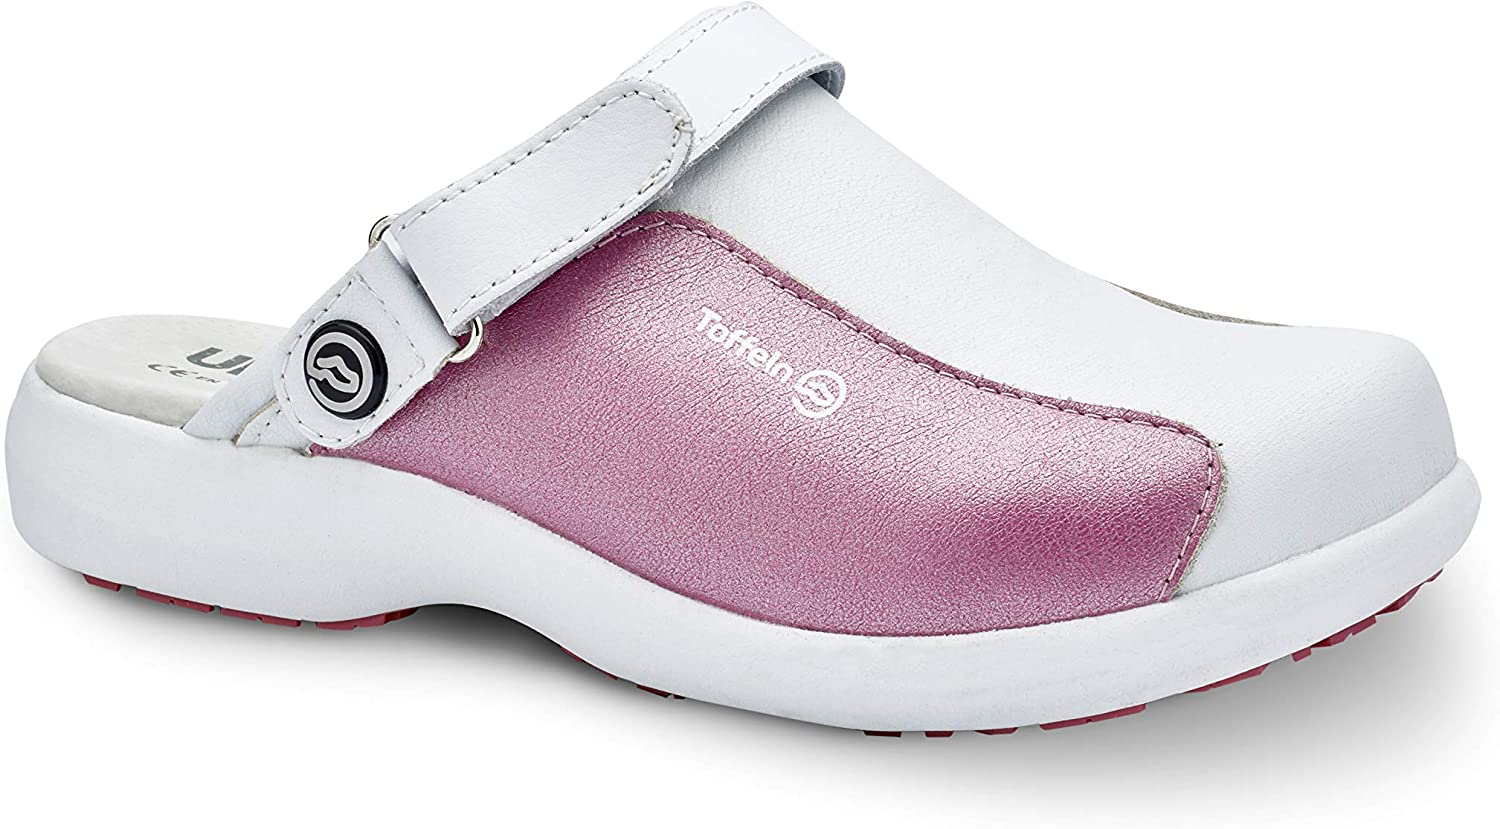 Lightweight Excellent Breathability Perfect for Nurses and Doctors Shock Absorbing Anti-Static Materials Comfortable Toffeln Ultralite Clogs Stylish Design